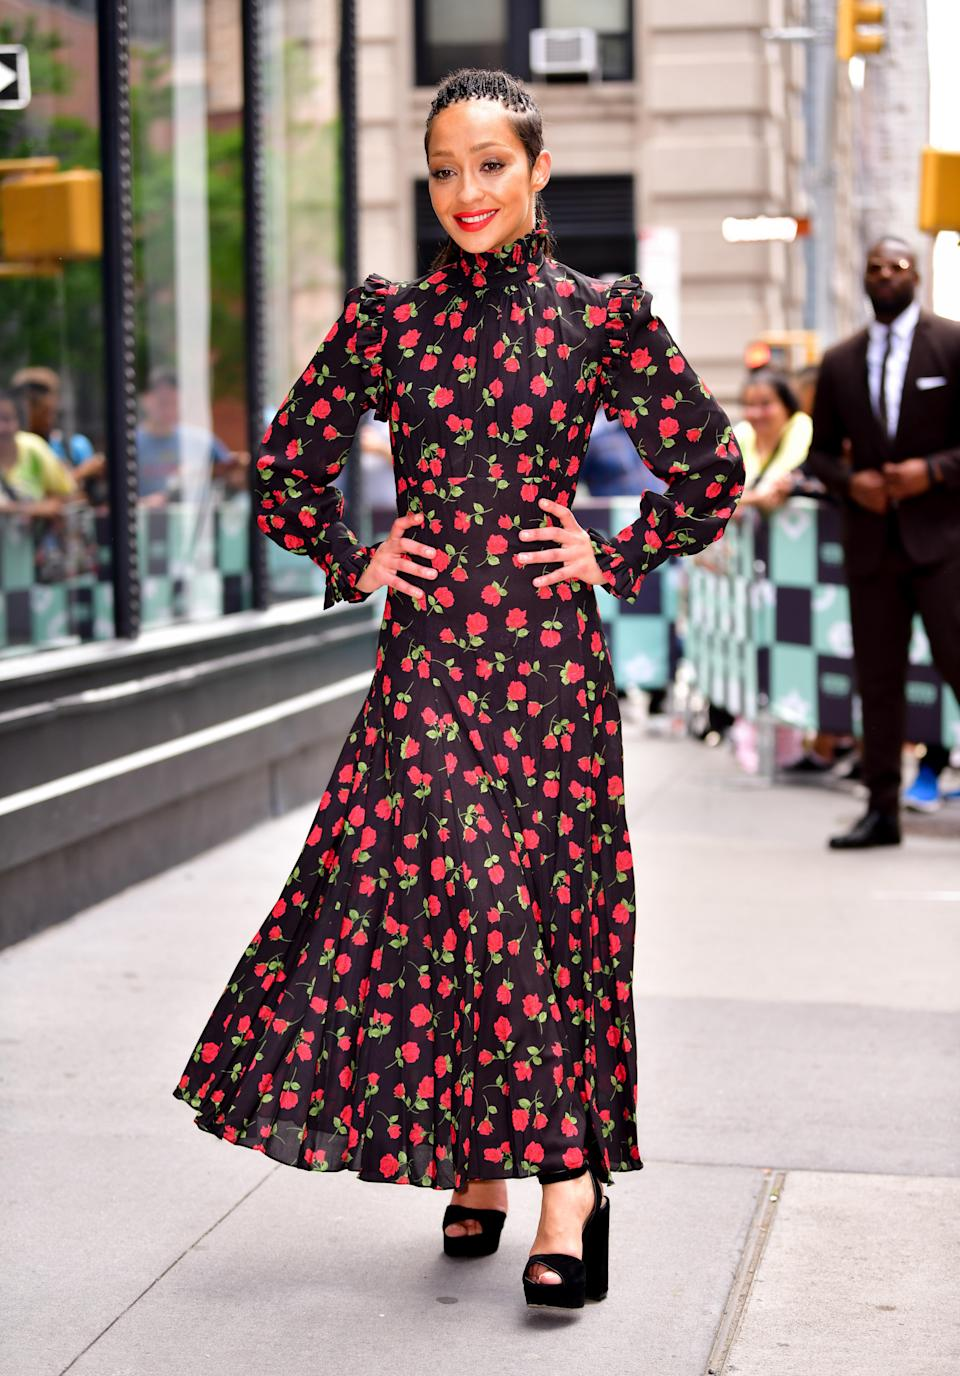 <p>Ruth Negga was spotted in New York wearing a summer-ready floral dress by Michael Kors. [Photo: Getty] </p>